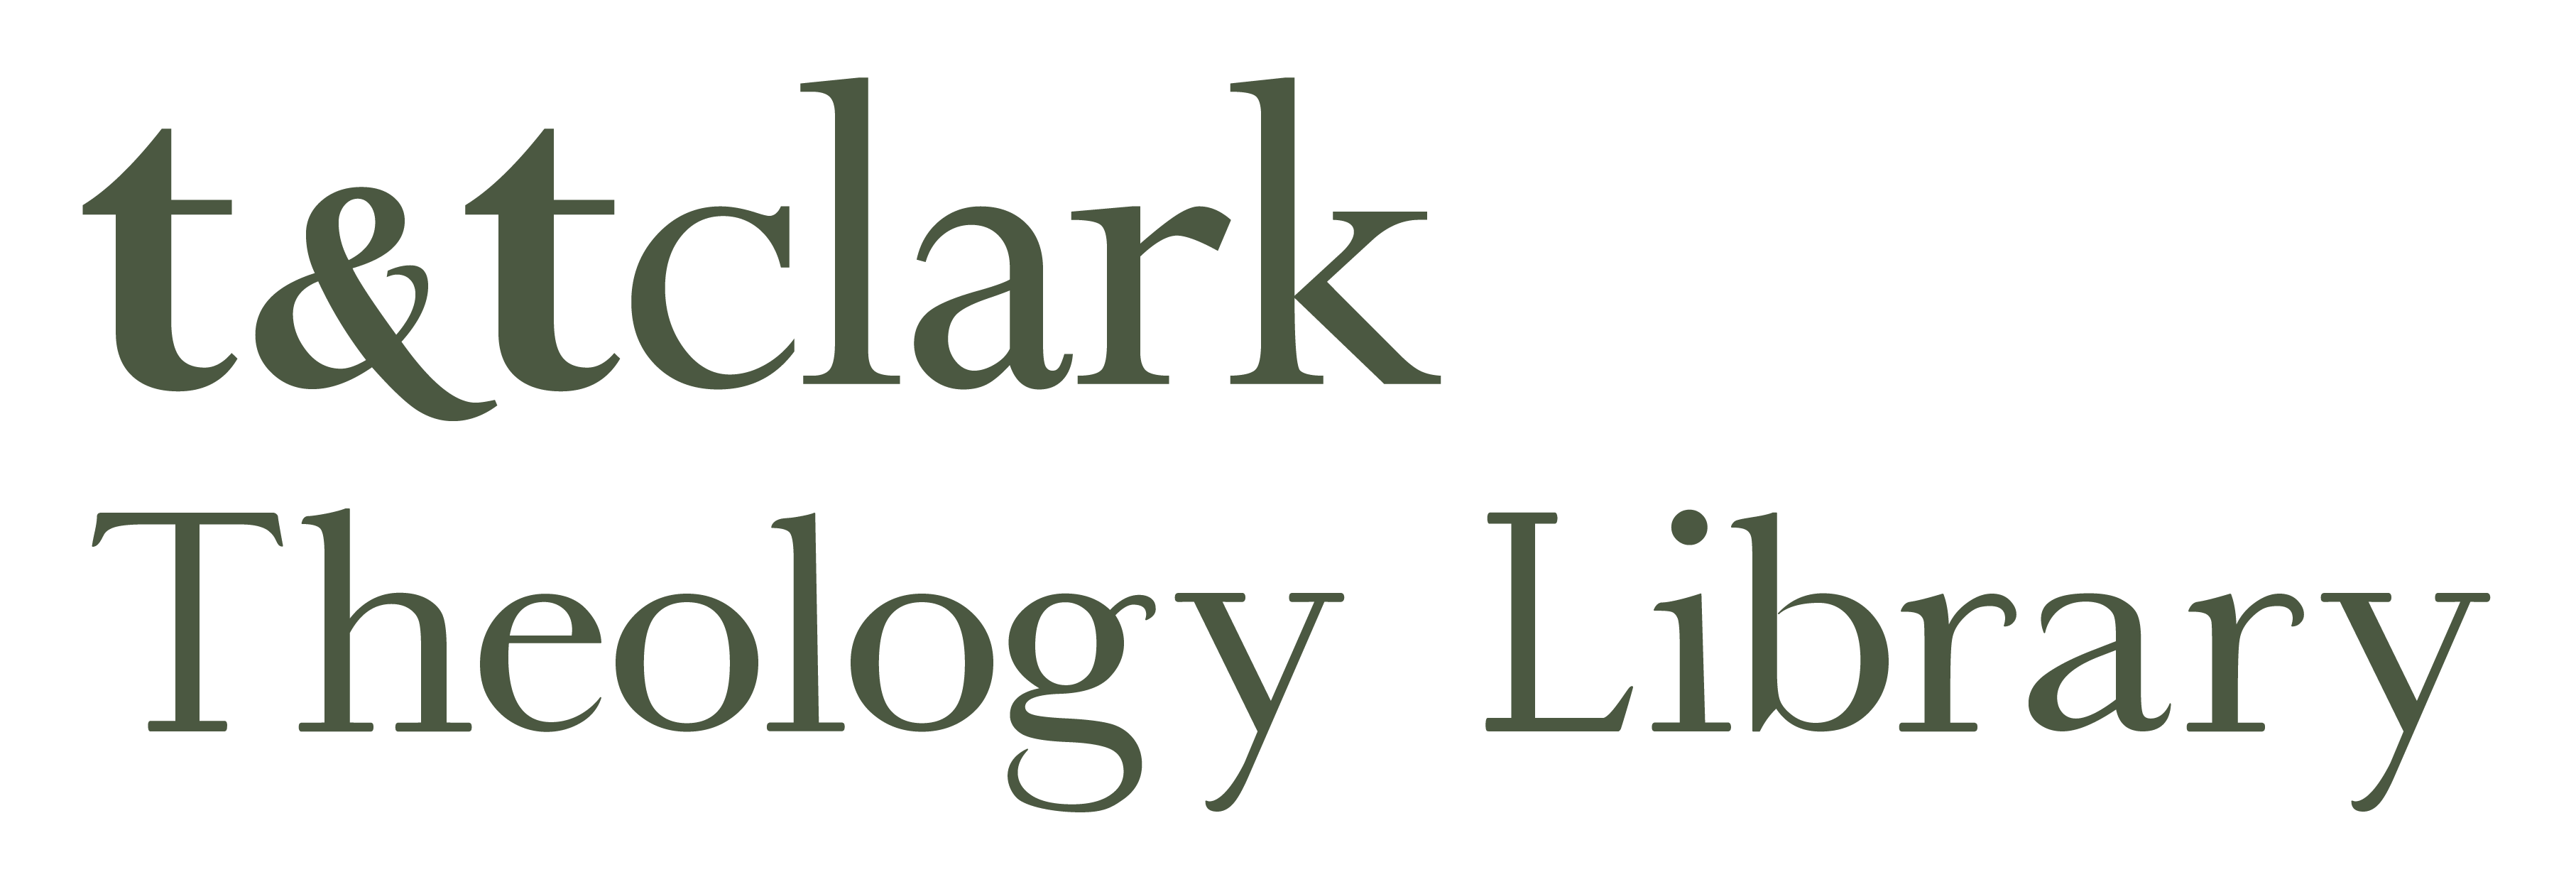 T&T Clark Theology Library logo